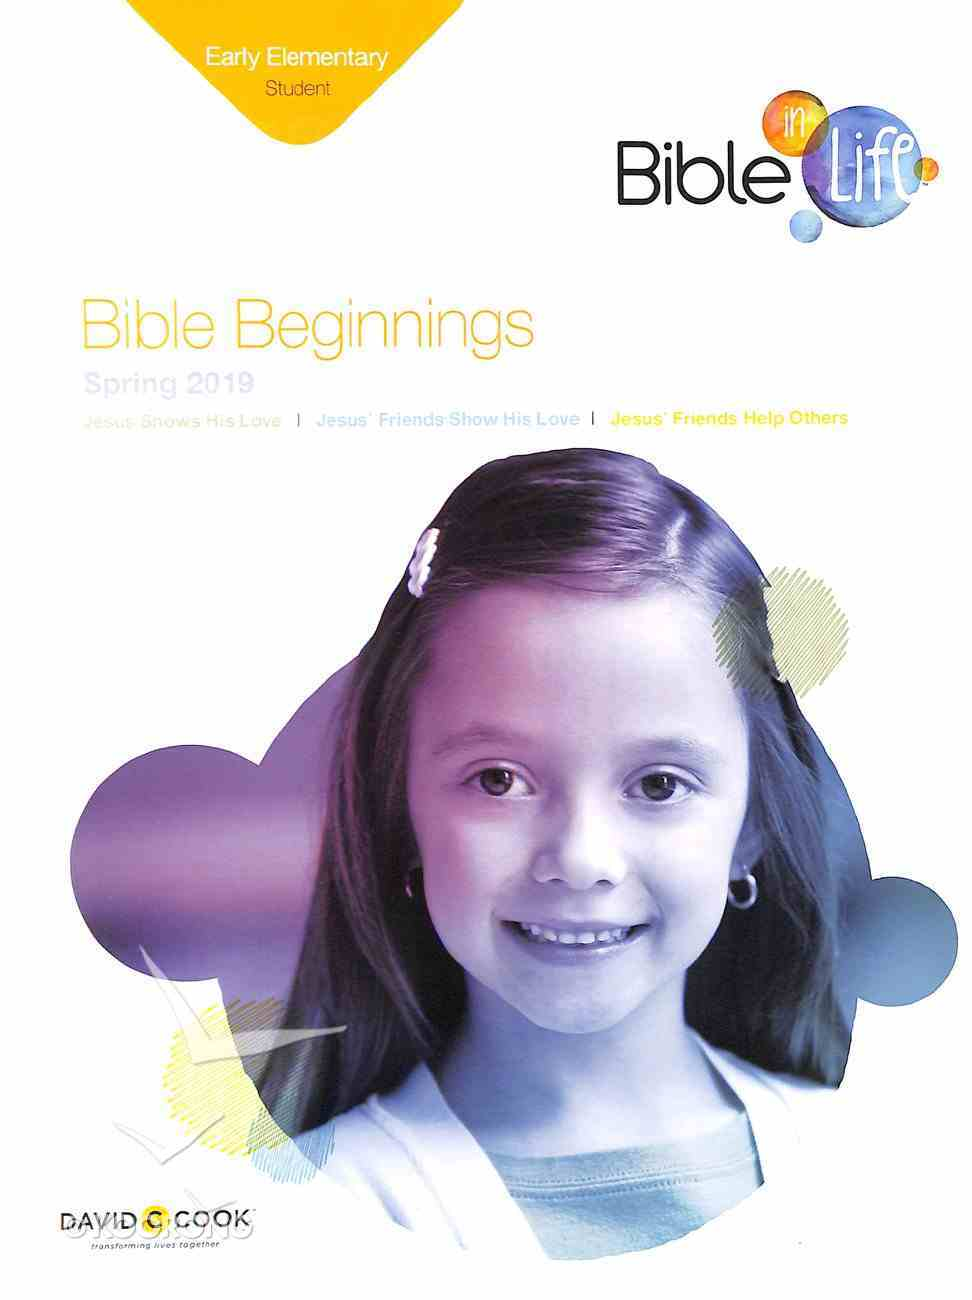 Bible Beginnings (Student Book) (Bible In Life Curriculum Series) Paperback